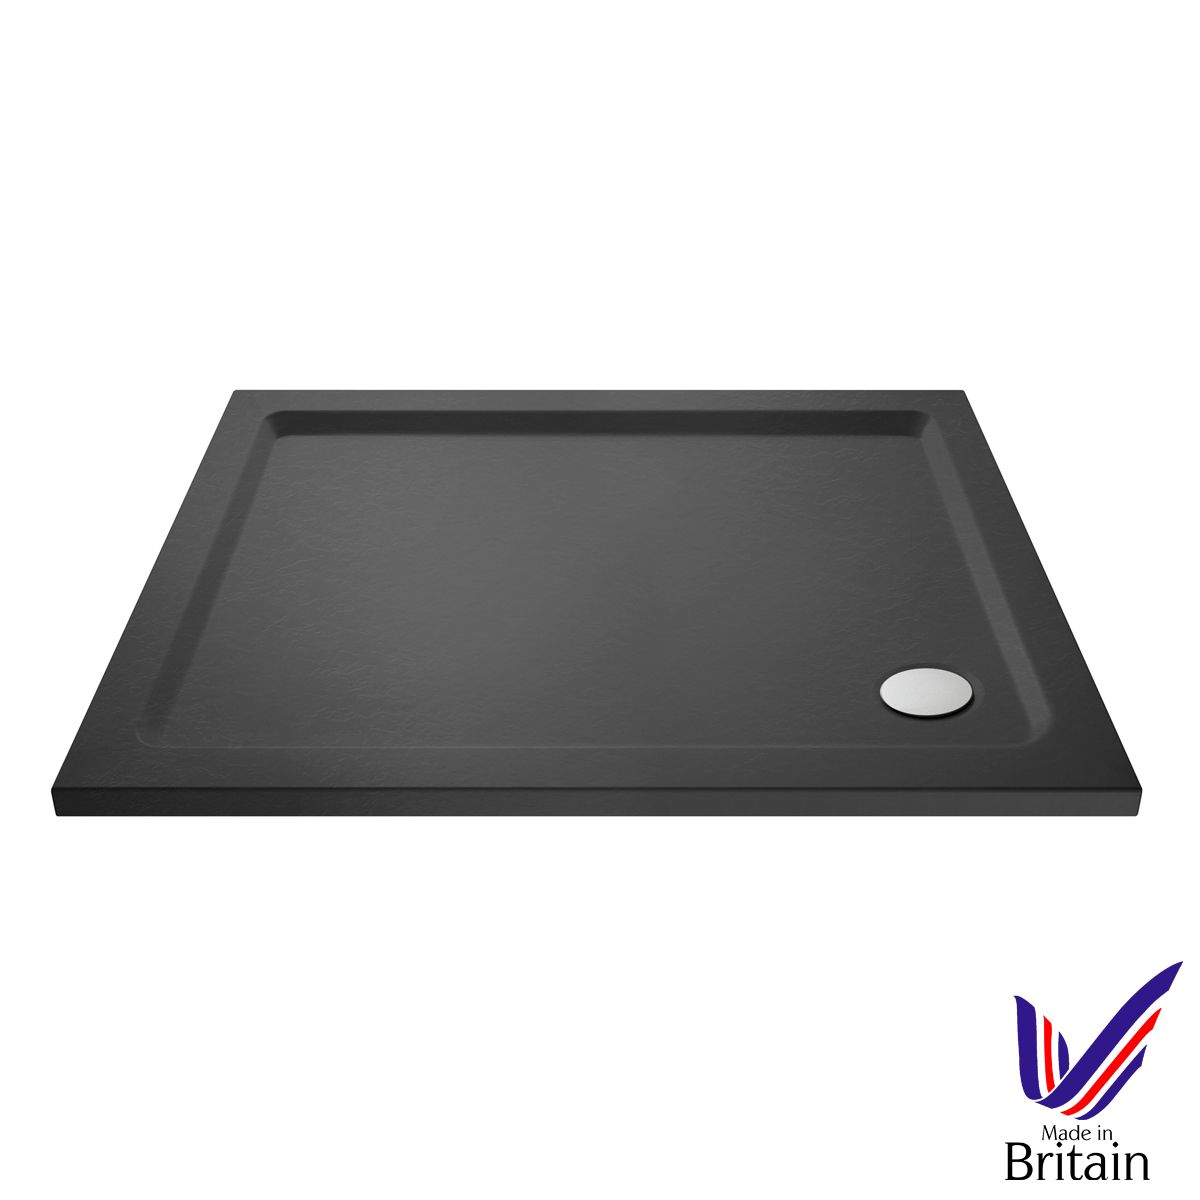 1100 x 760 Shower Tray Slate Grey Rectangular Low Profile by Pearlstone